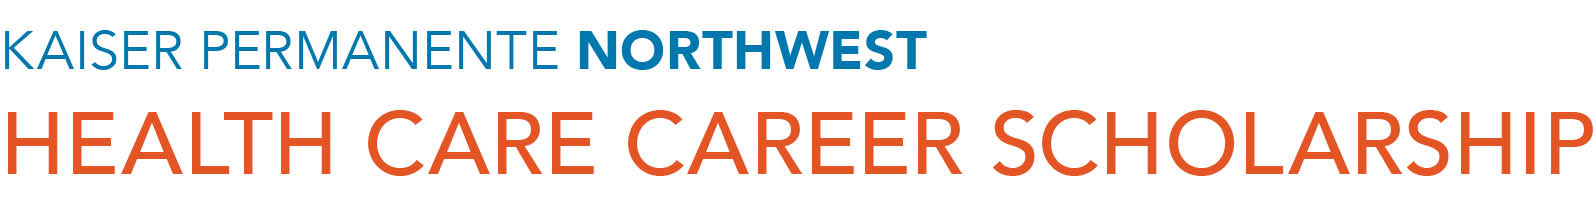 Kaiser Permanente Health Care Career Scholarship Program logo